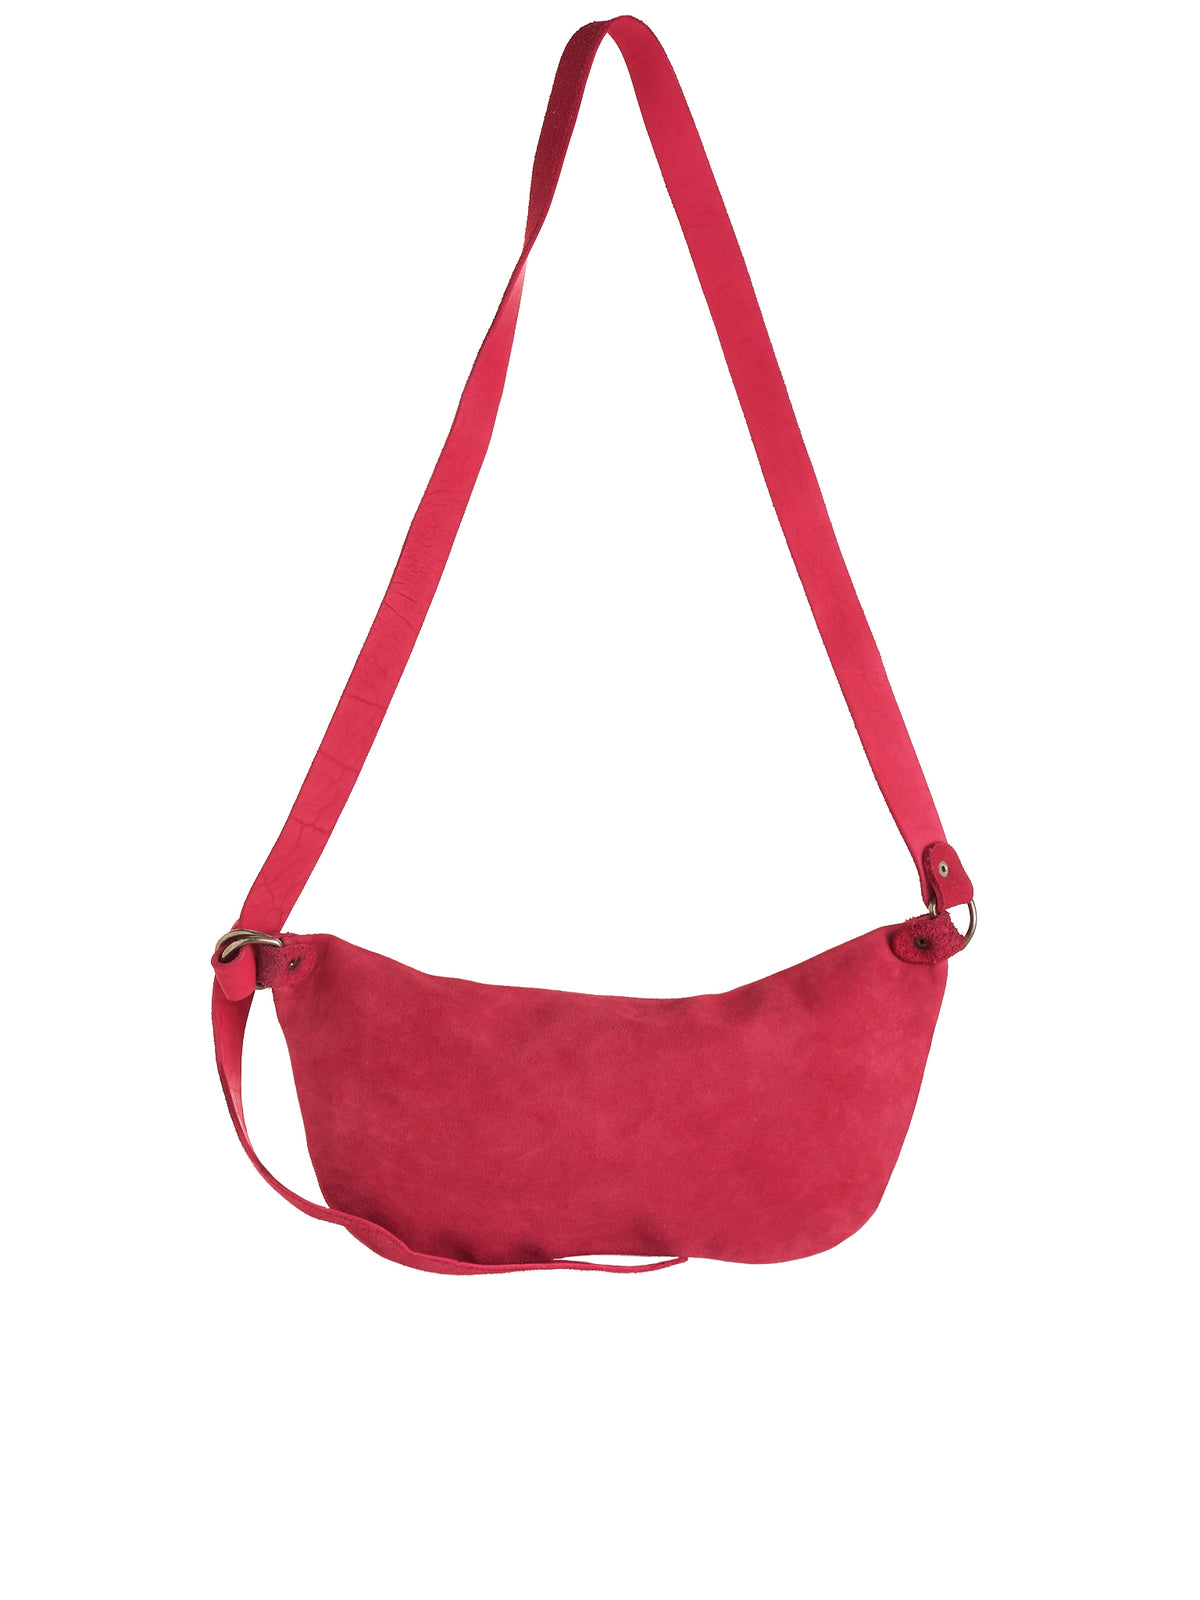 Q10M Reverse Horse Leather Bag (Q10M-HORSE-REVERSE-PINK)